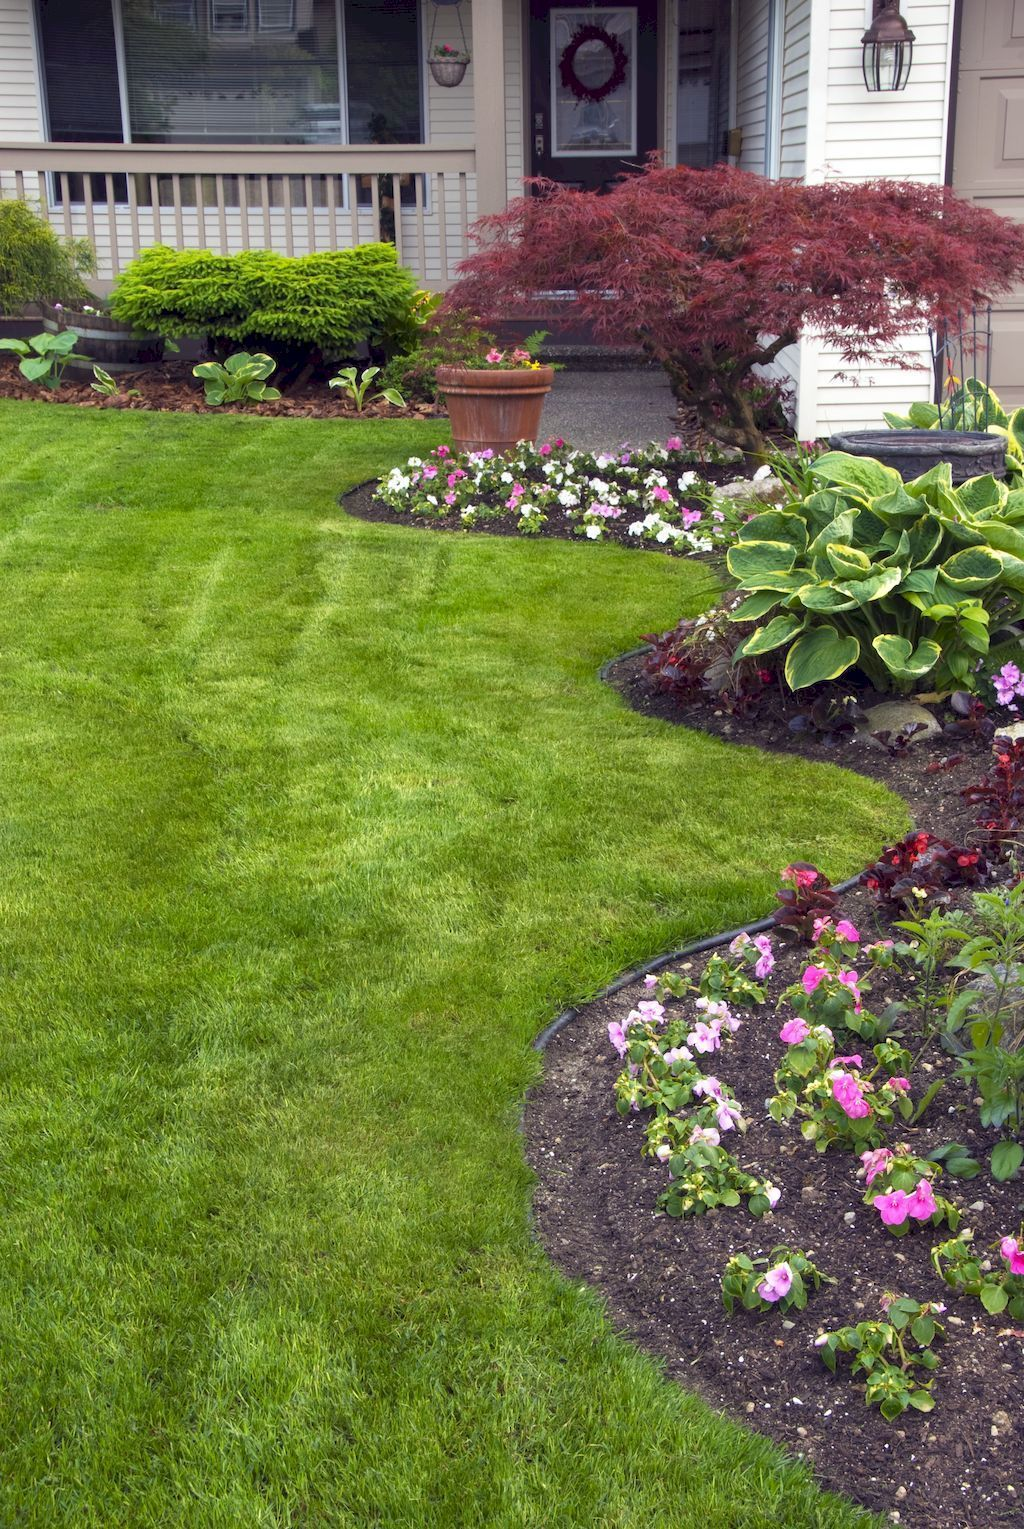 15 diy how to make your backyard awesome ideas 9 curves running